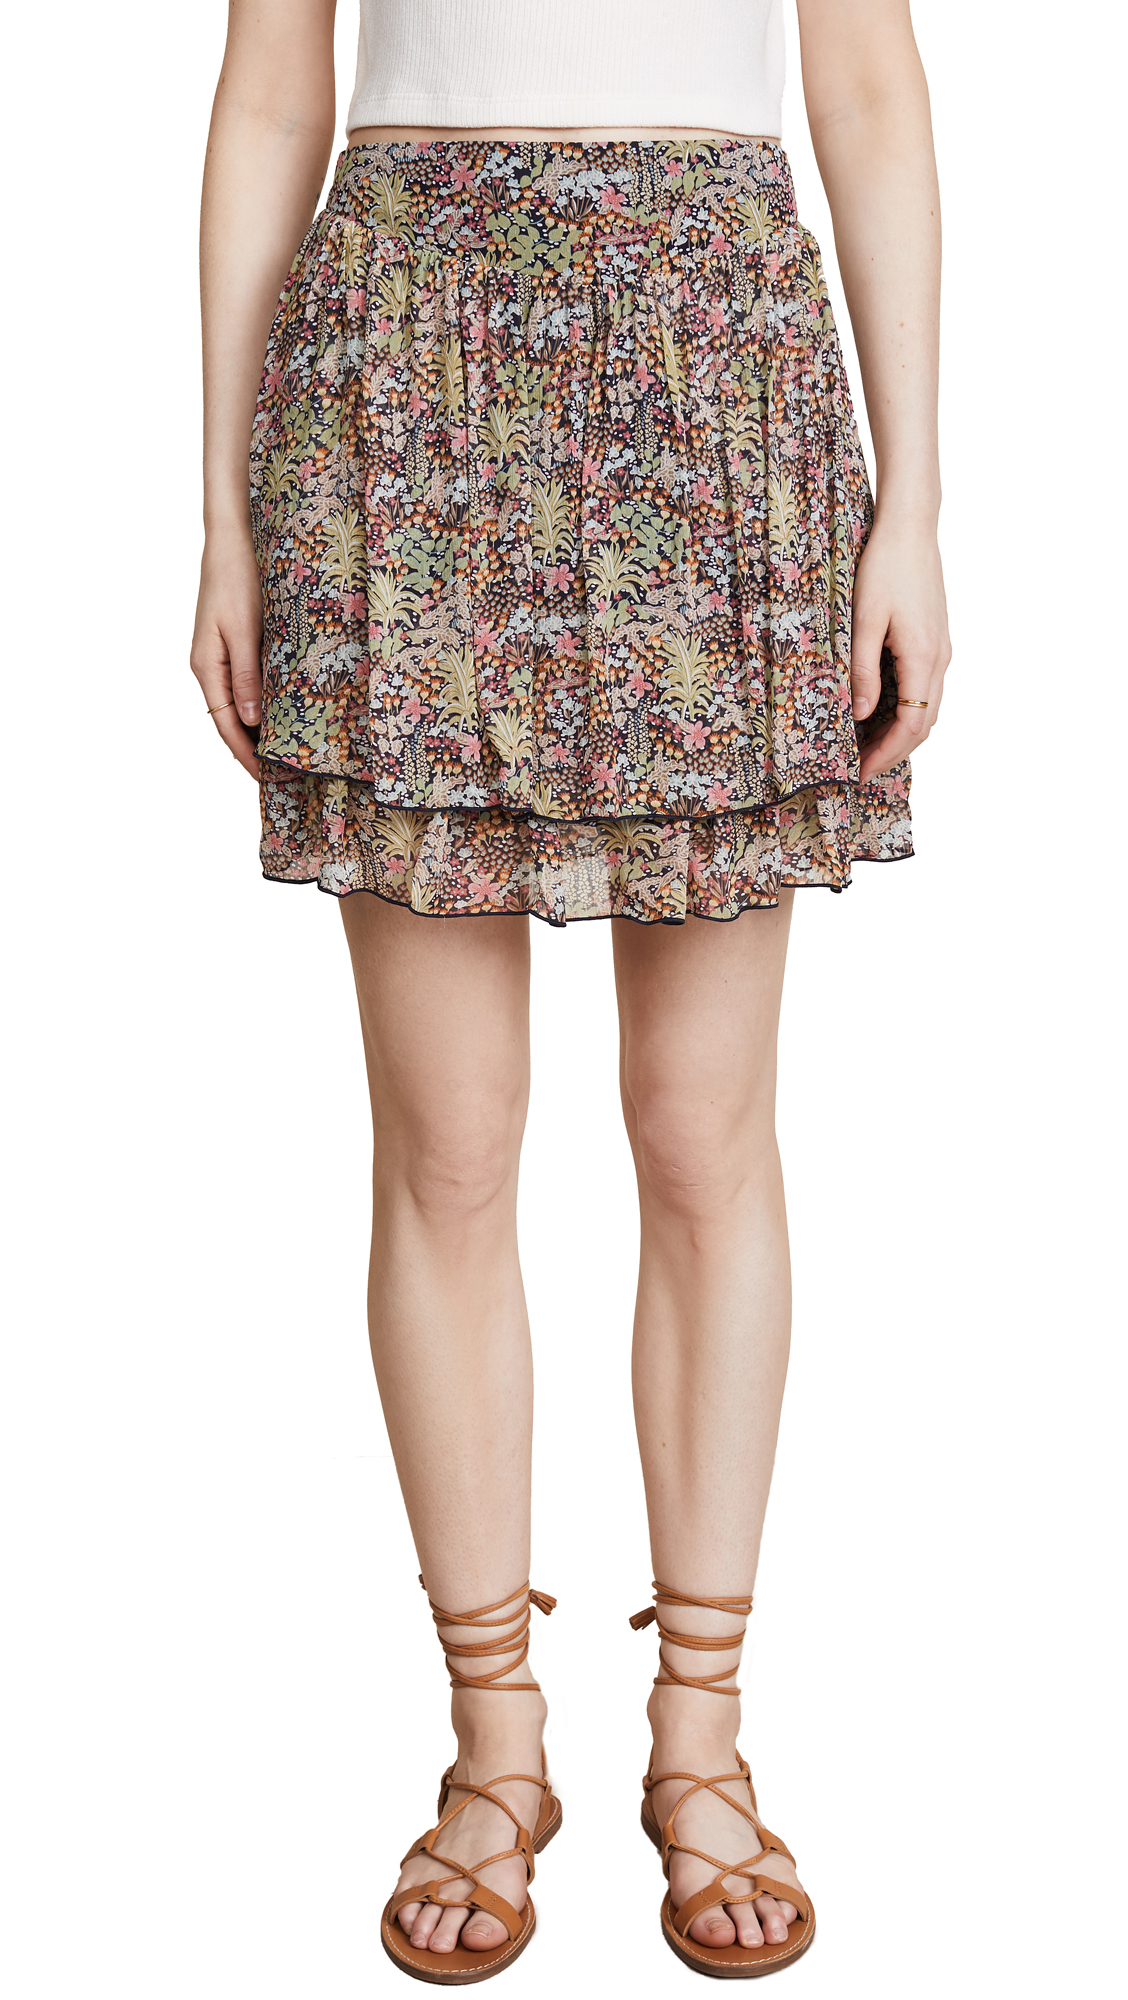 SCOTCH & SODA/MAISON SCOTCH DOUBLE LAYER MINISKIRT